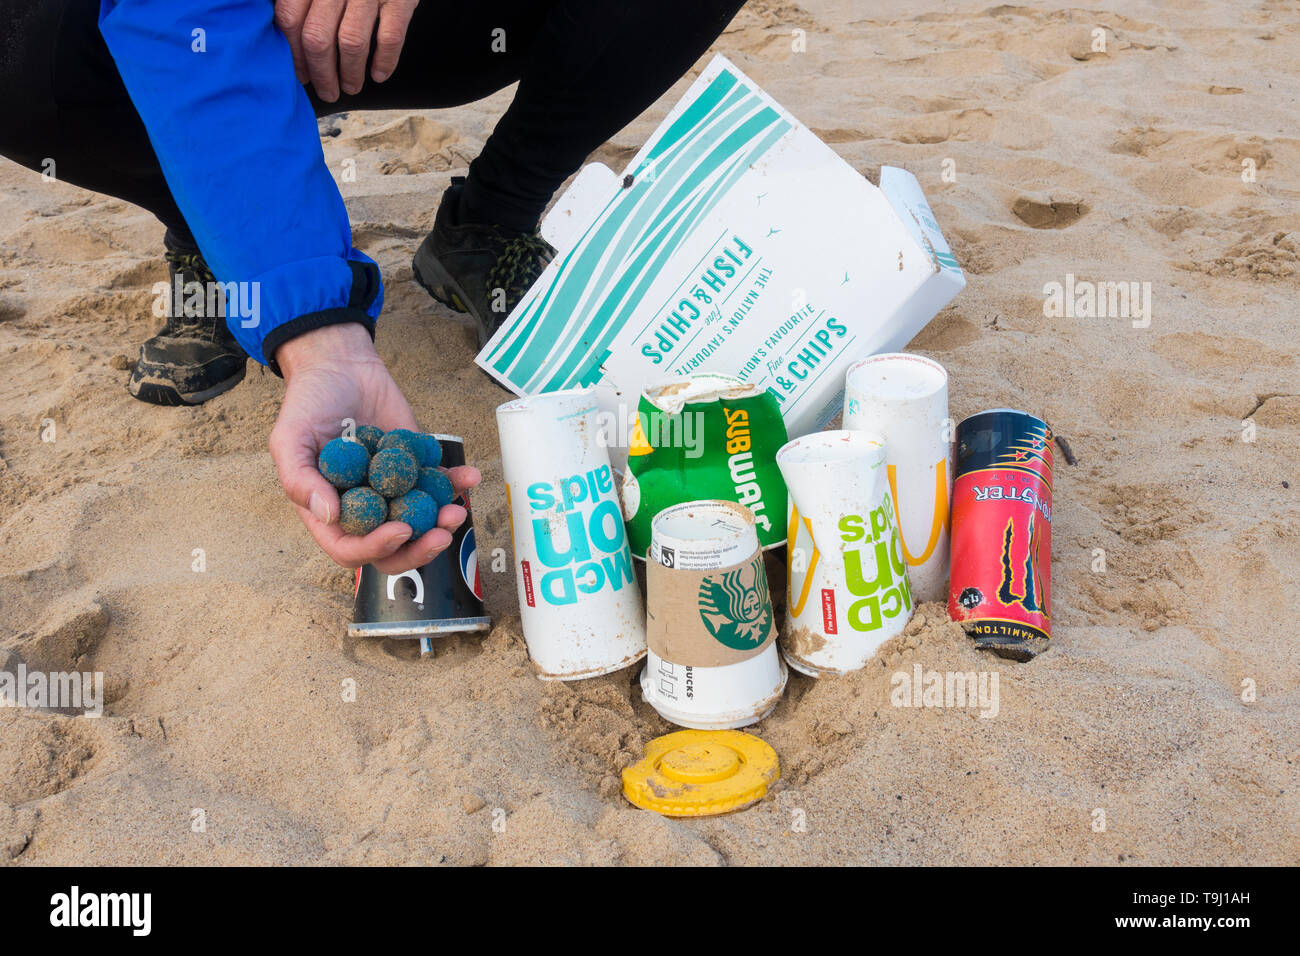 Seaton Carew, County Durham, UK. 19th May 2019. UK weather: a glorious morning for Plogging. A jogger collects rubbish on his morning run through the dunes at Seaton Carew on the north east coast of England. Plogging (picking up litter while jogging) is a Scandinavian lifestyle trend where joggers pick up rubbish/plastic as they run.Also found on the beach were Taprogge Balls (in jogger's hand), used to clean cooling pipes in power stations. Taprogge balls previously found on this stretch of coast were found to have come from the nearby Hartlepool nuclear power station (they are said to be har Stock Photo